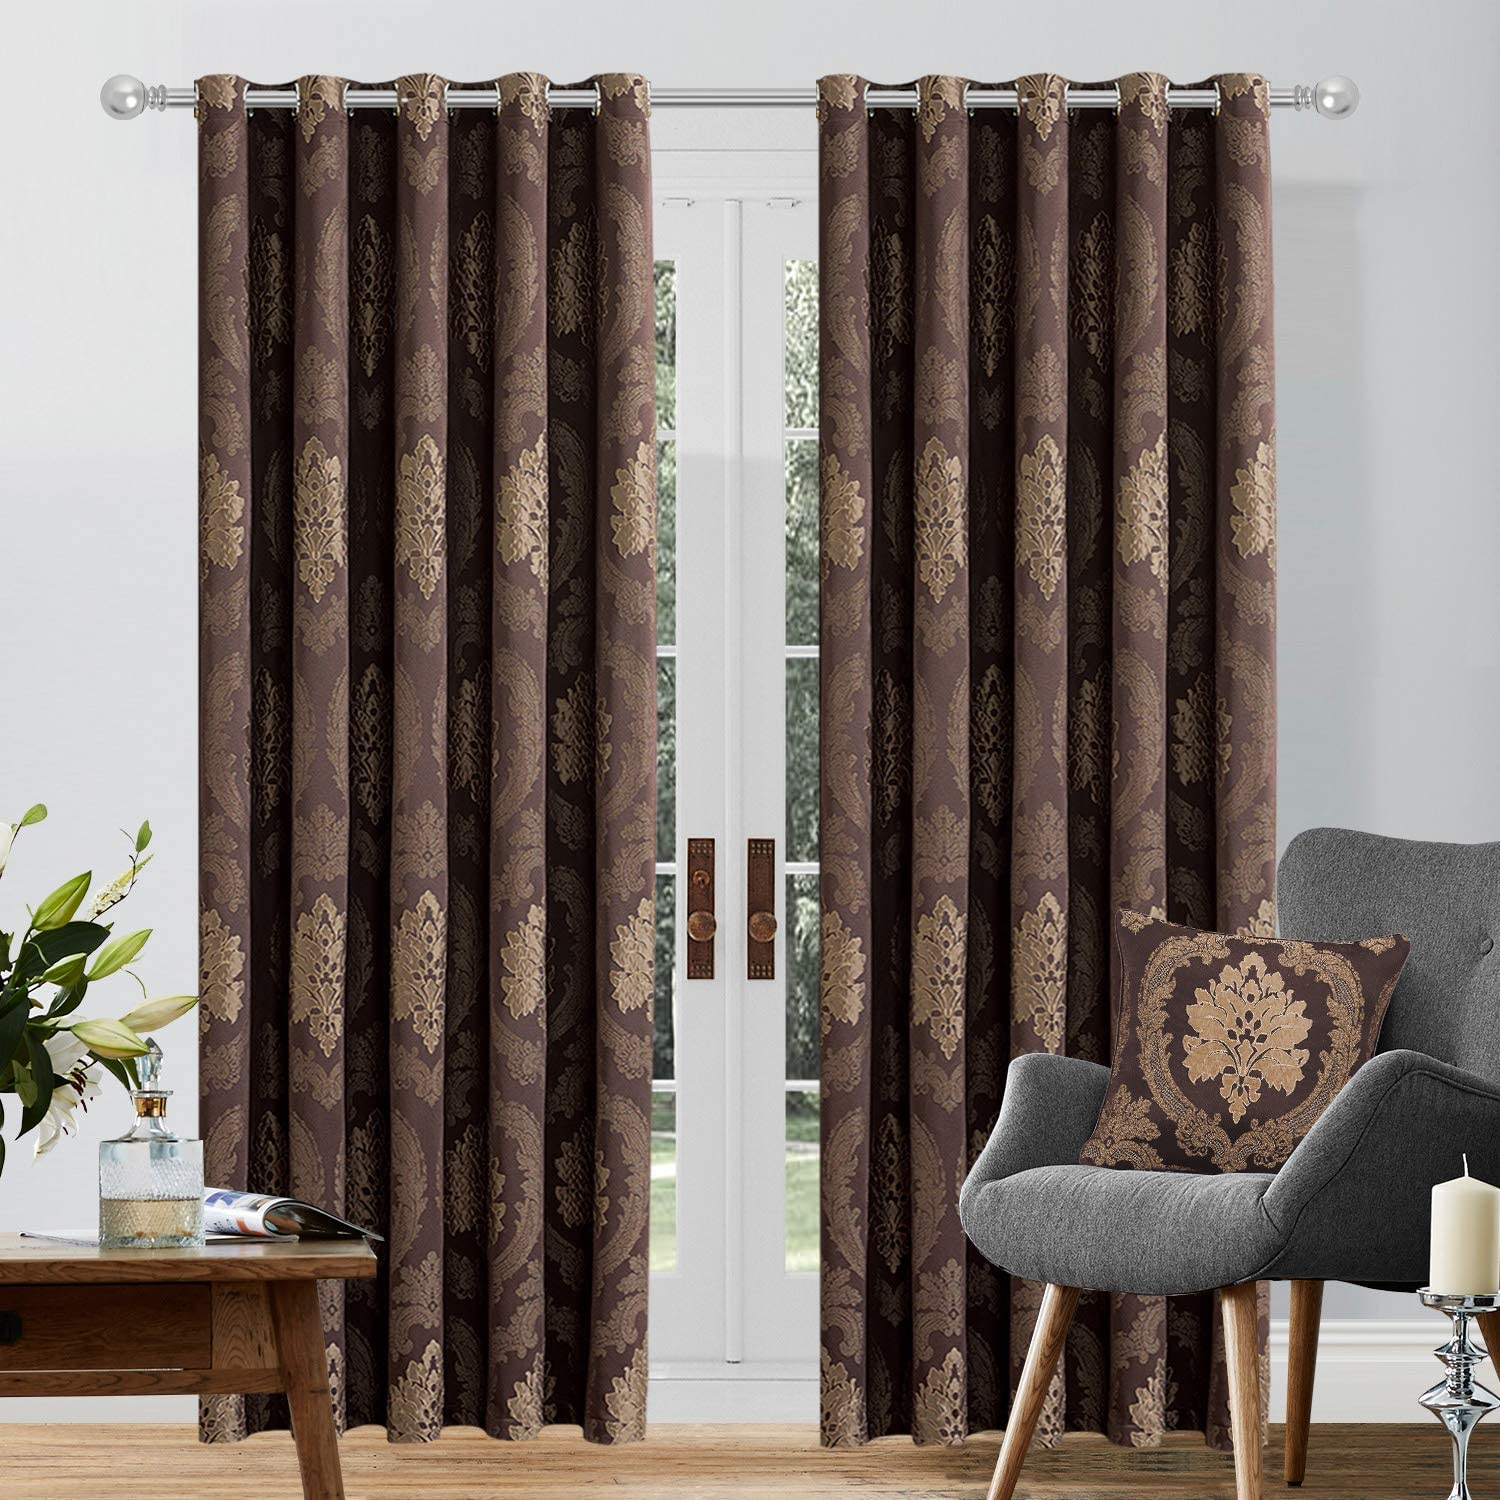 Imperial Rooms Windows Blinds Jacquard Ring Top Fully Lined Readymade Pair Of Curtains With Two Tie Backs Betty Chocolate 66x72 Eyelet Amazon Co Uk Kitchen Home